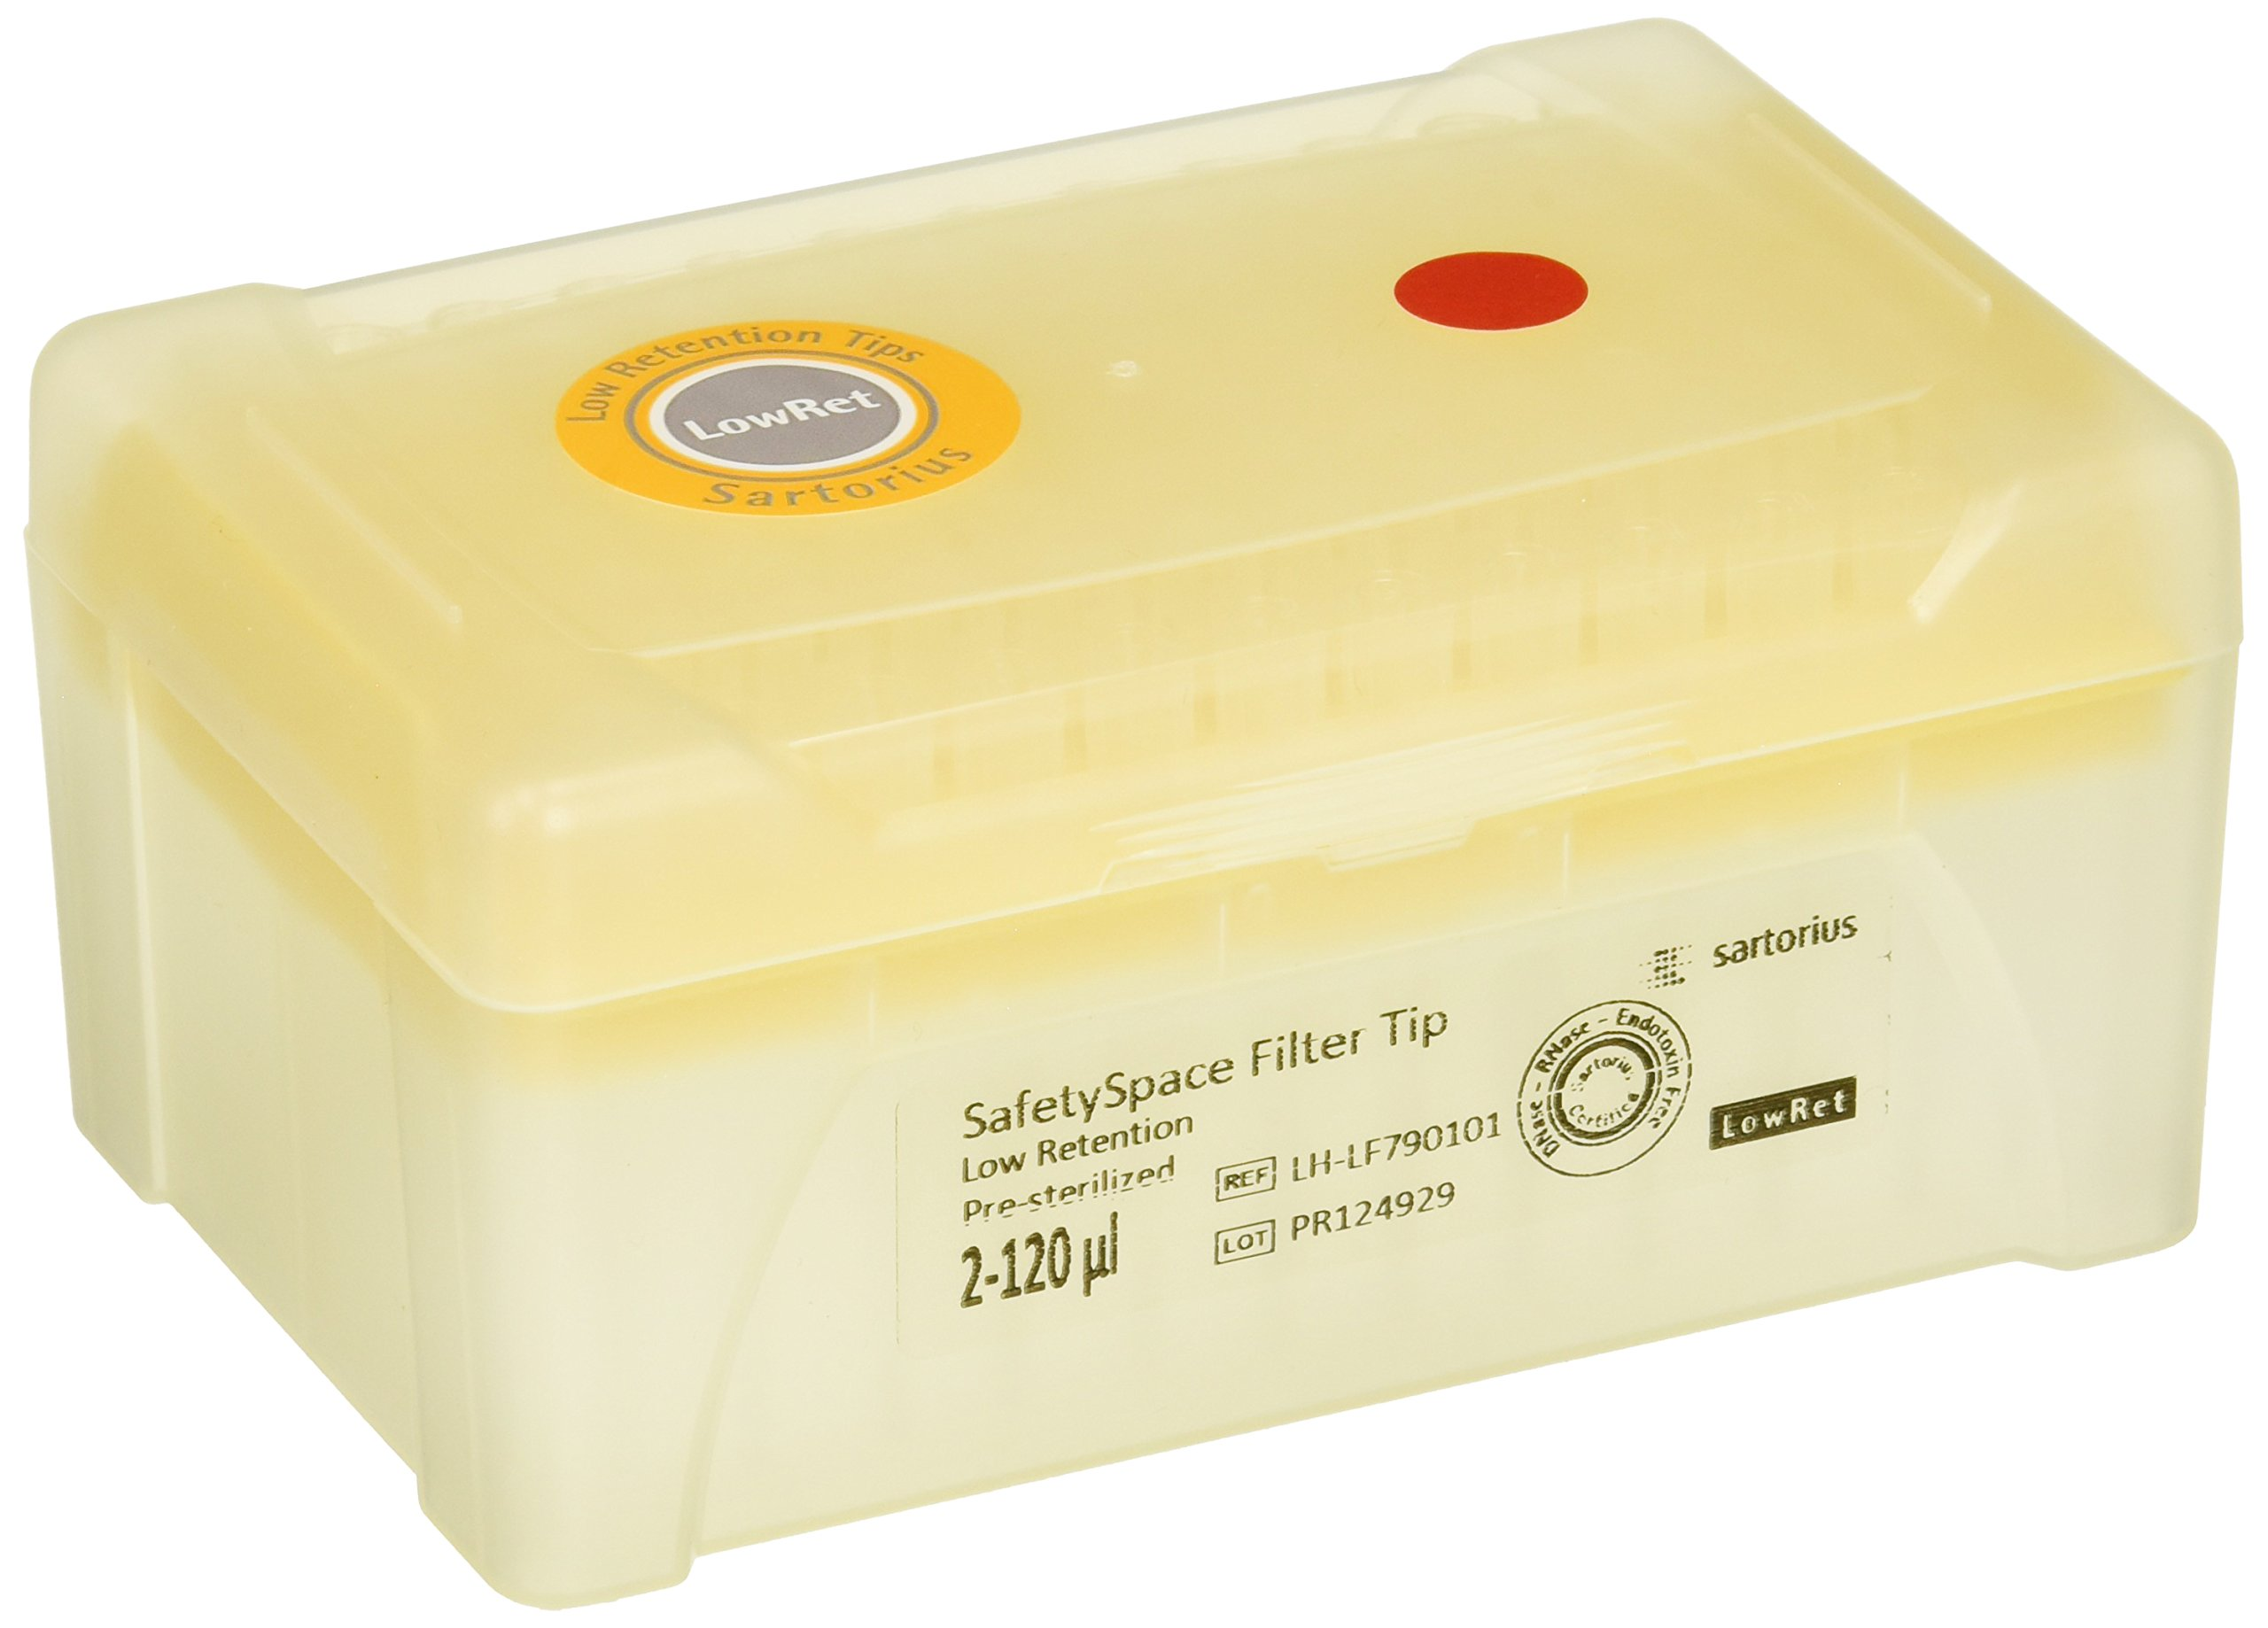 Sartorius Corporation LH-LF790101 SafetySpace Filter Tip Low Retention, 2-120 uL, Single Tray, Sterile (Pack of 960)